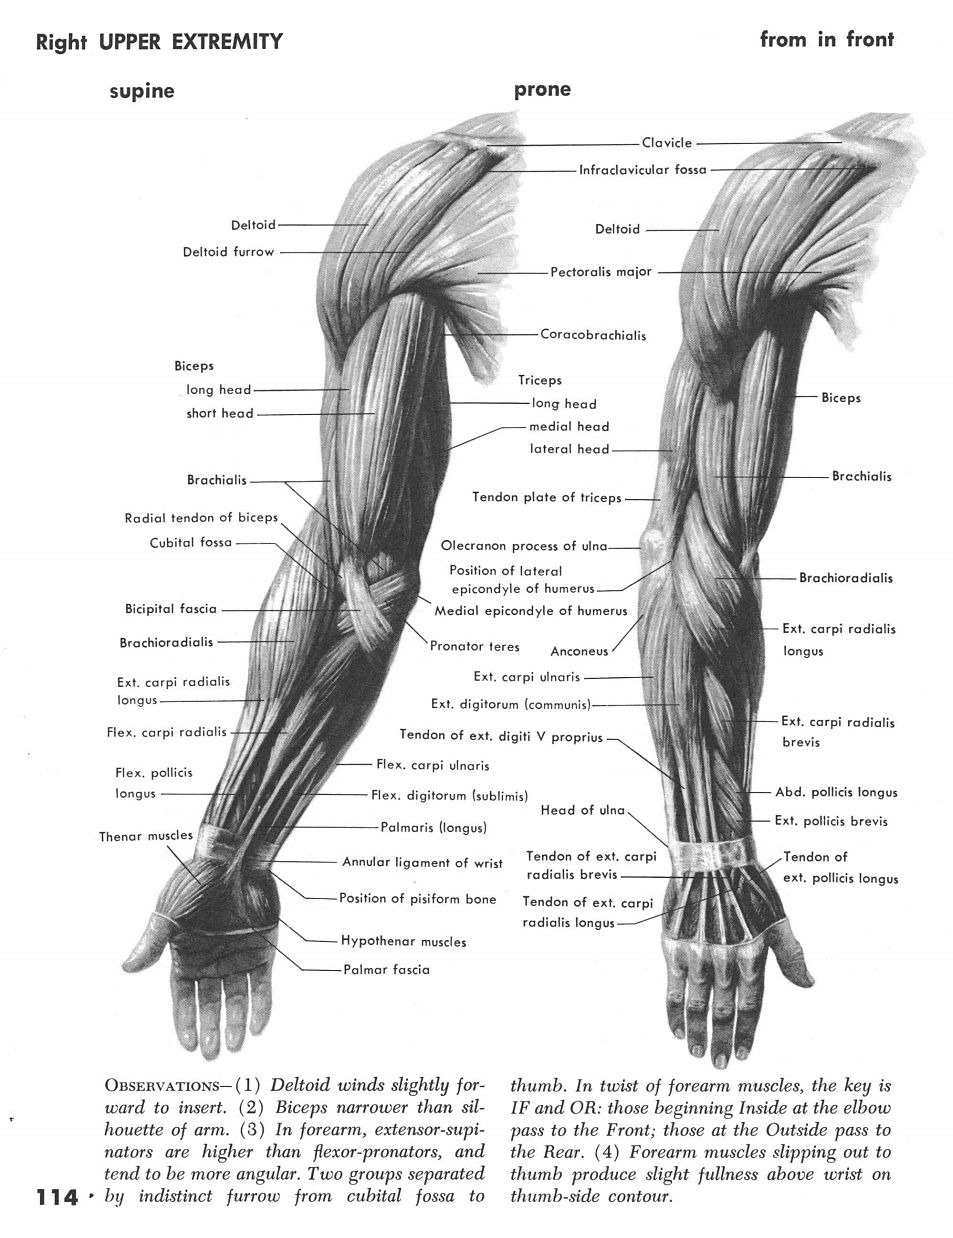 Right Arm Front 2   Anatomy   Pinterest   Arms and Anatomy